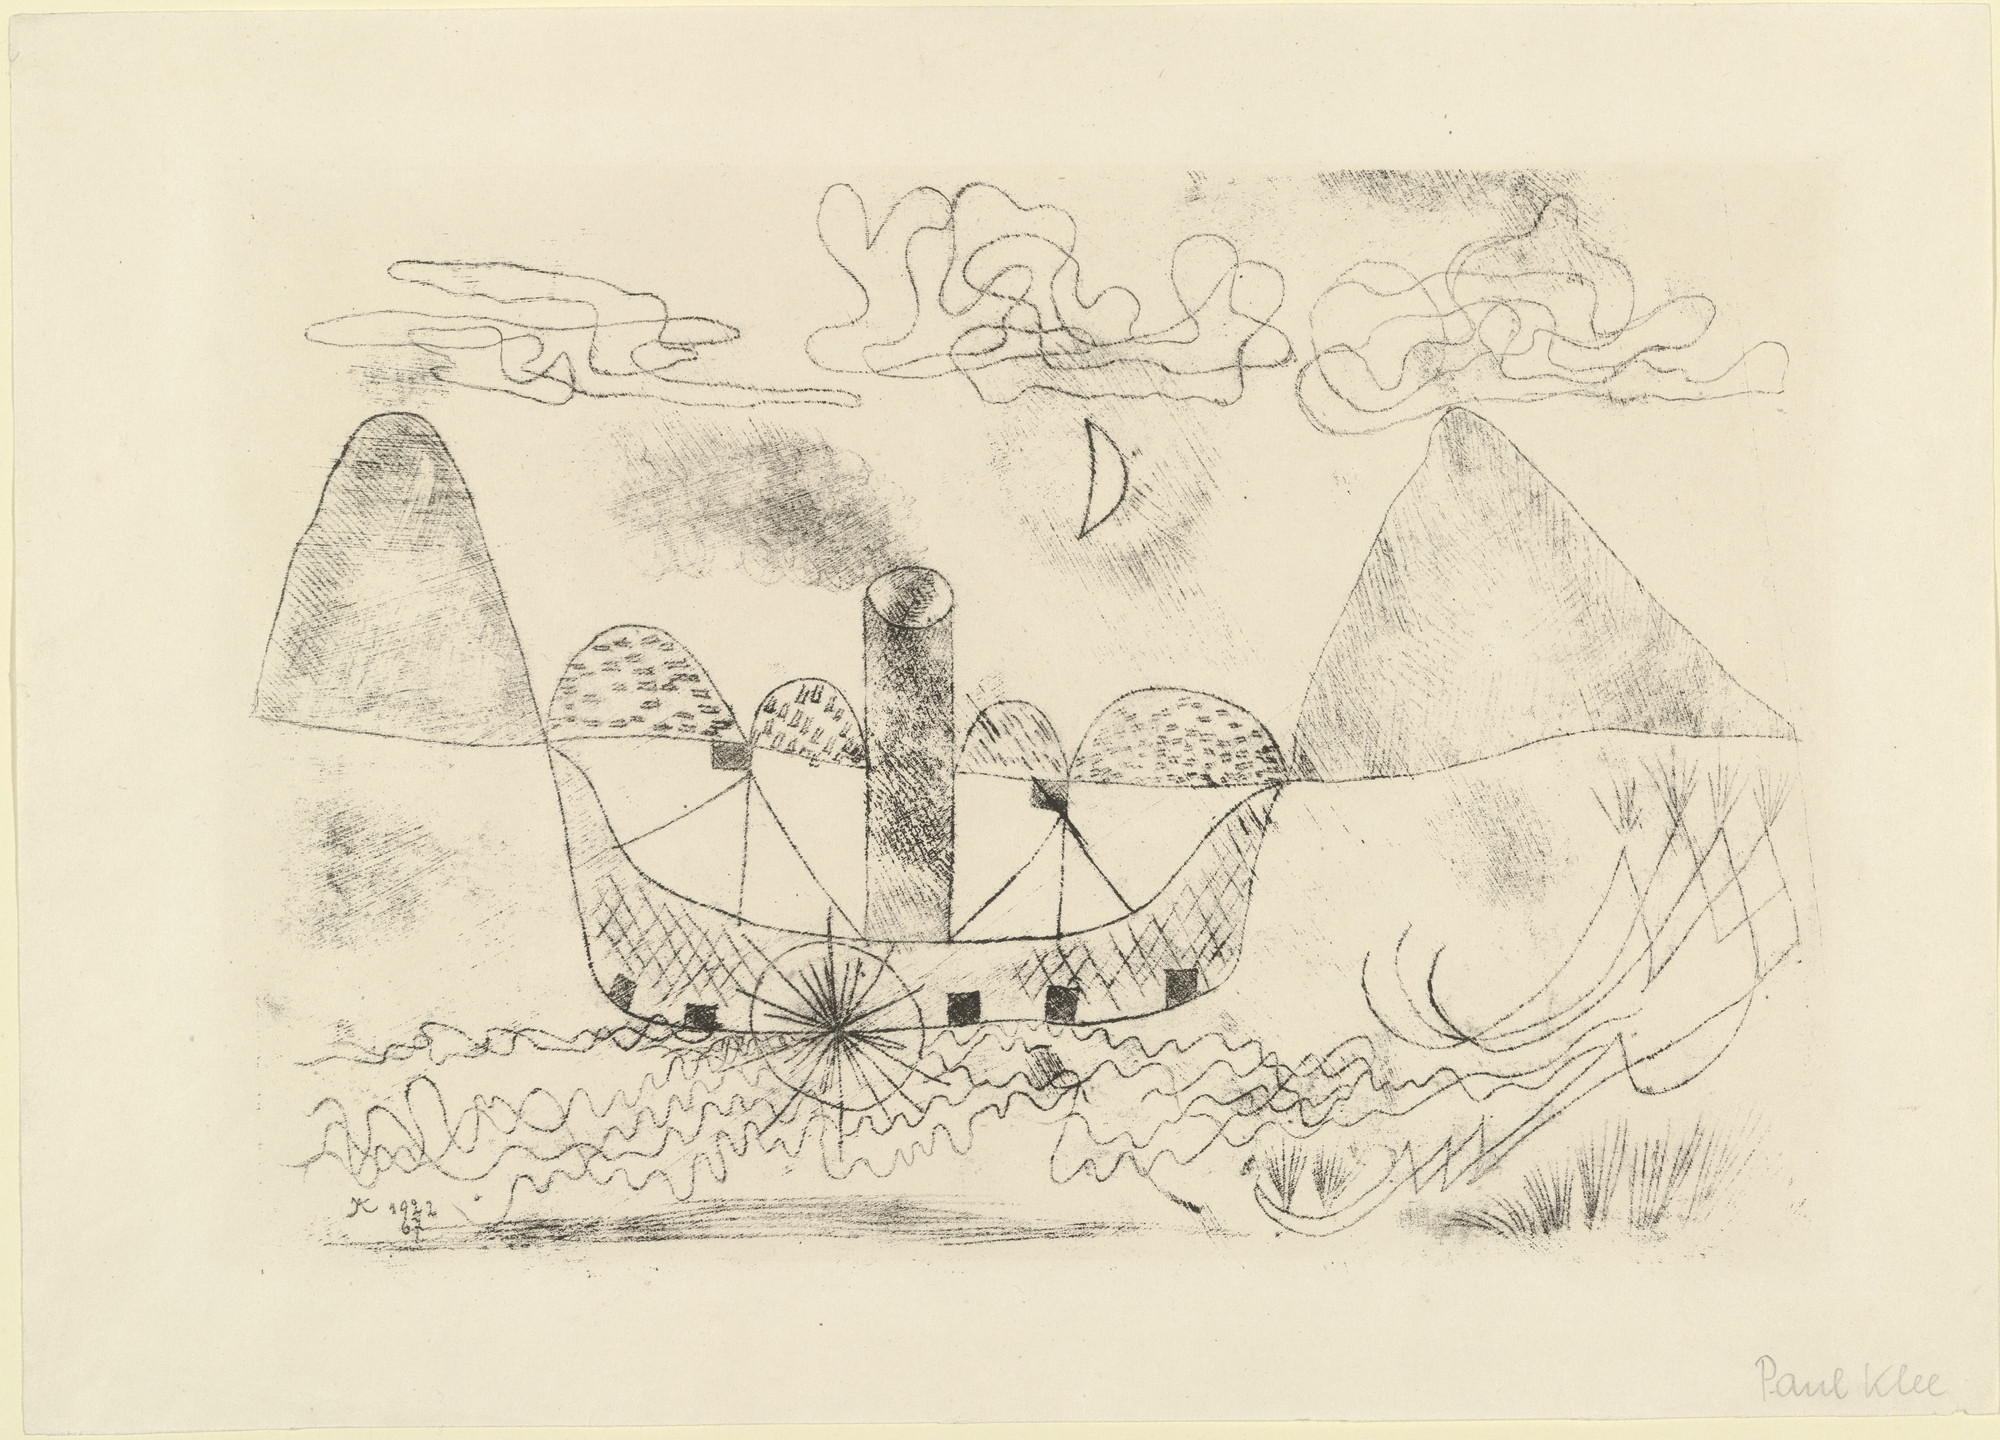 Paul Klee. Steamer at Lugano (Dampfer vor Lugano). 1922